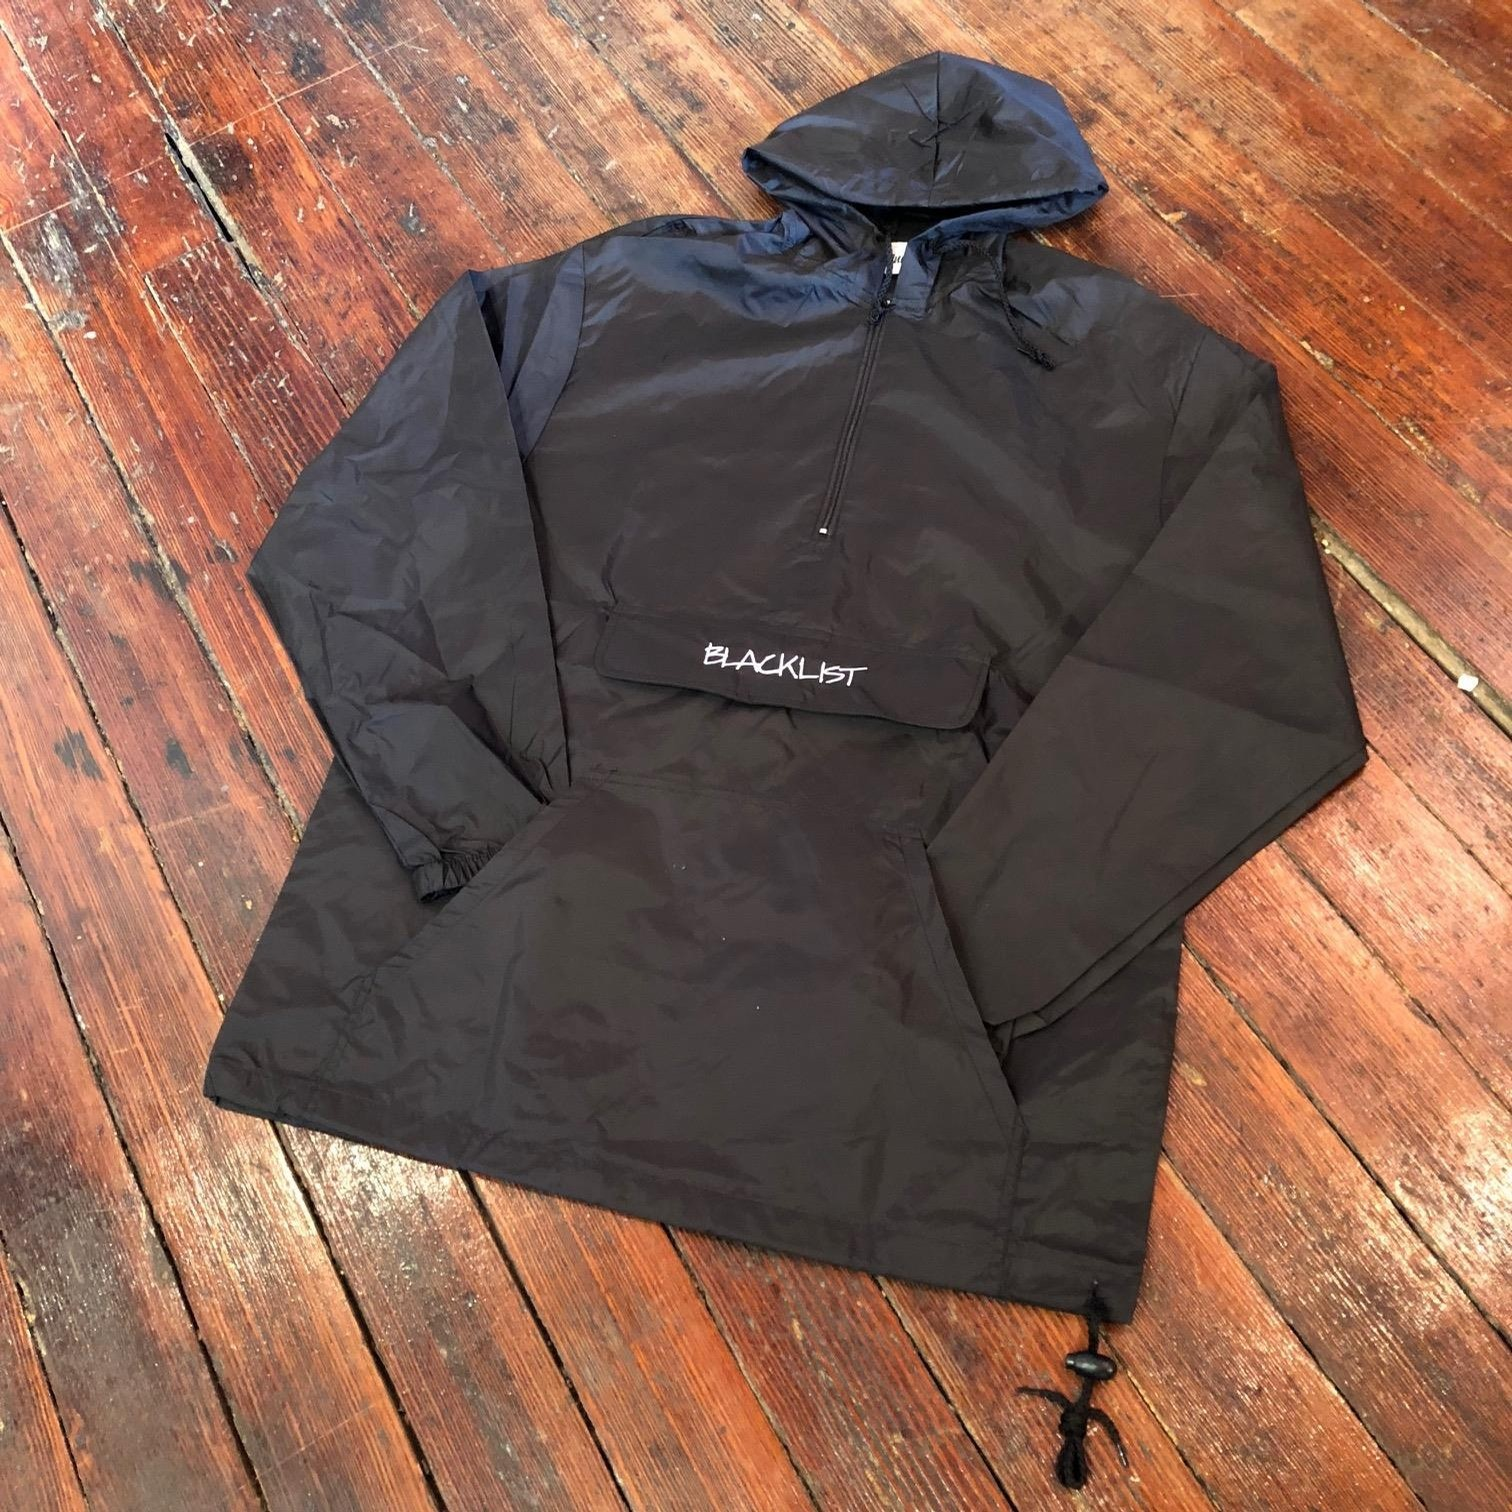 EMBROIDERED BLACKLISTRIGHTE LOGO PACKABLE ANORAK (BLACK)